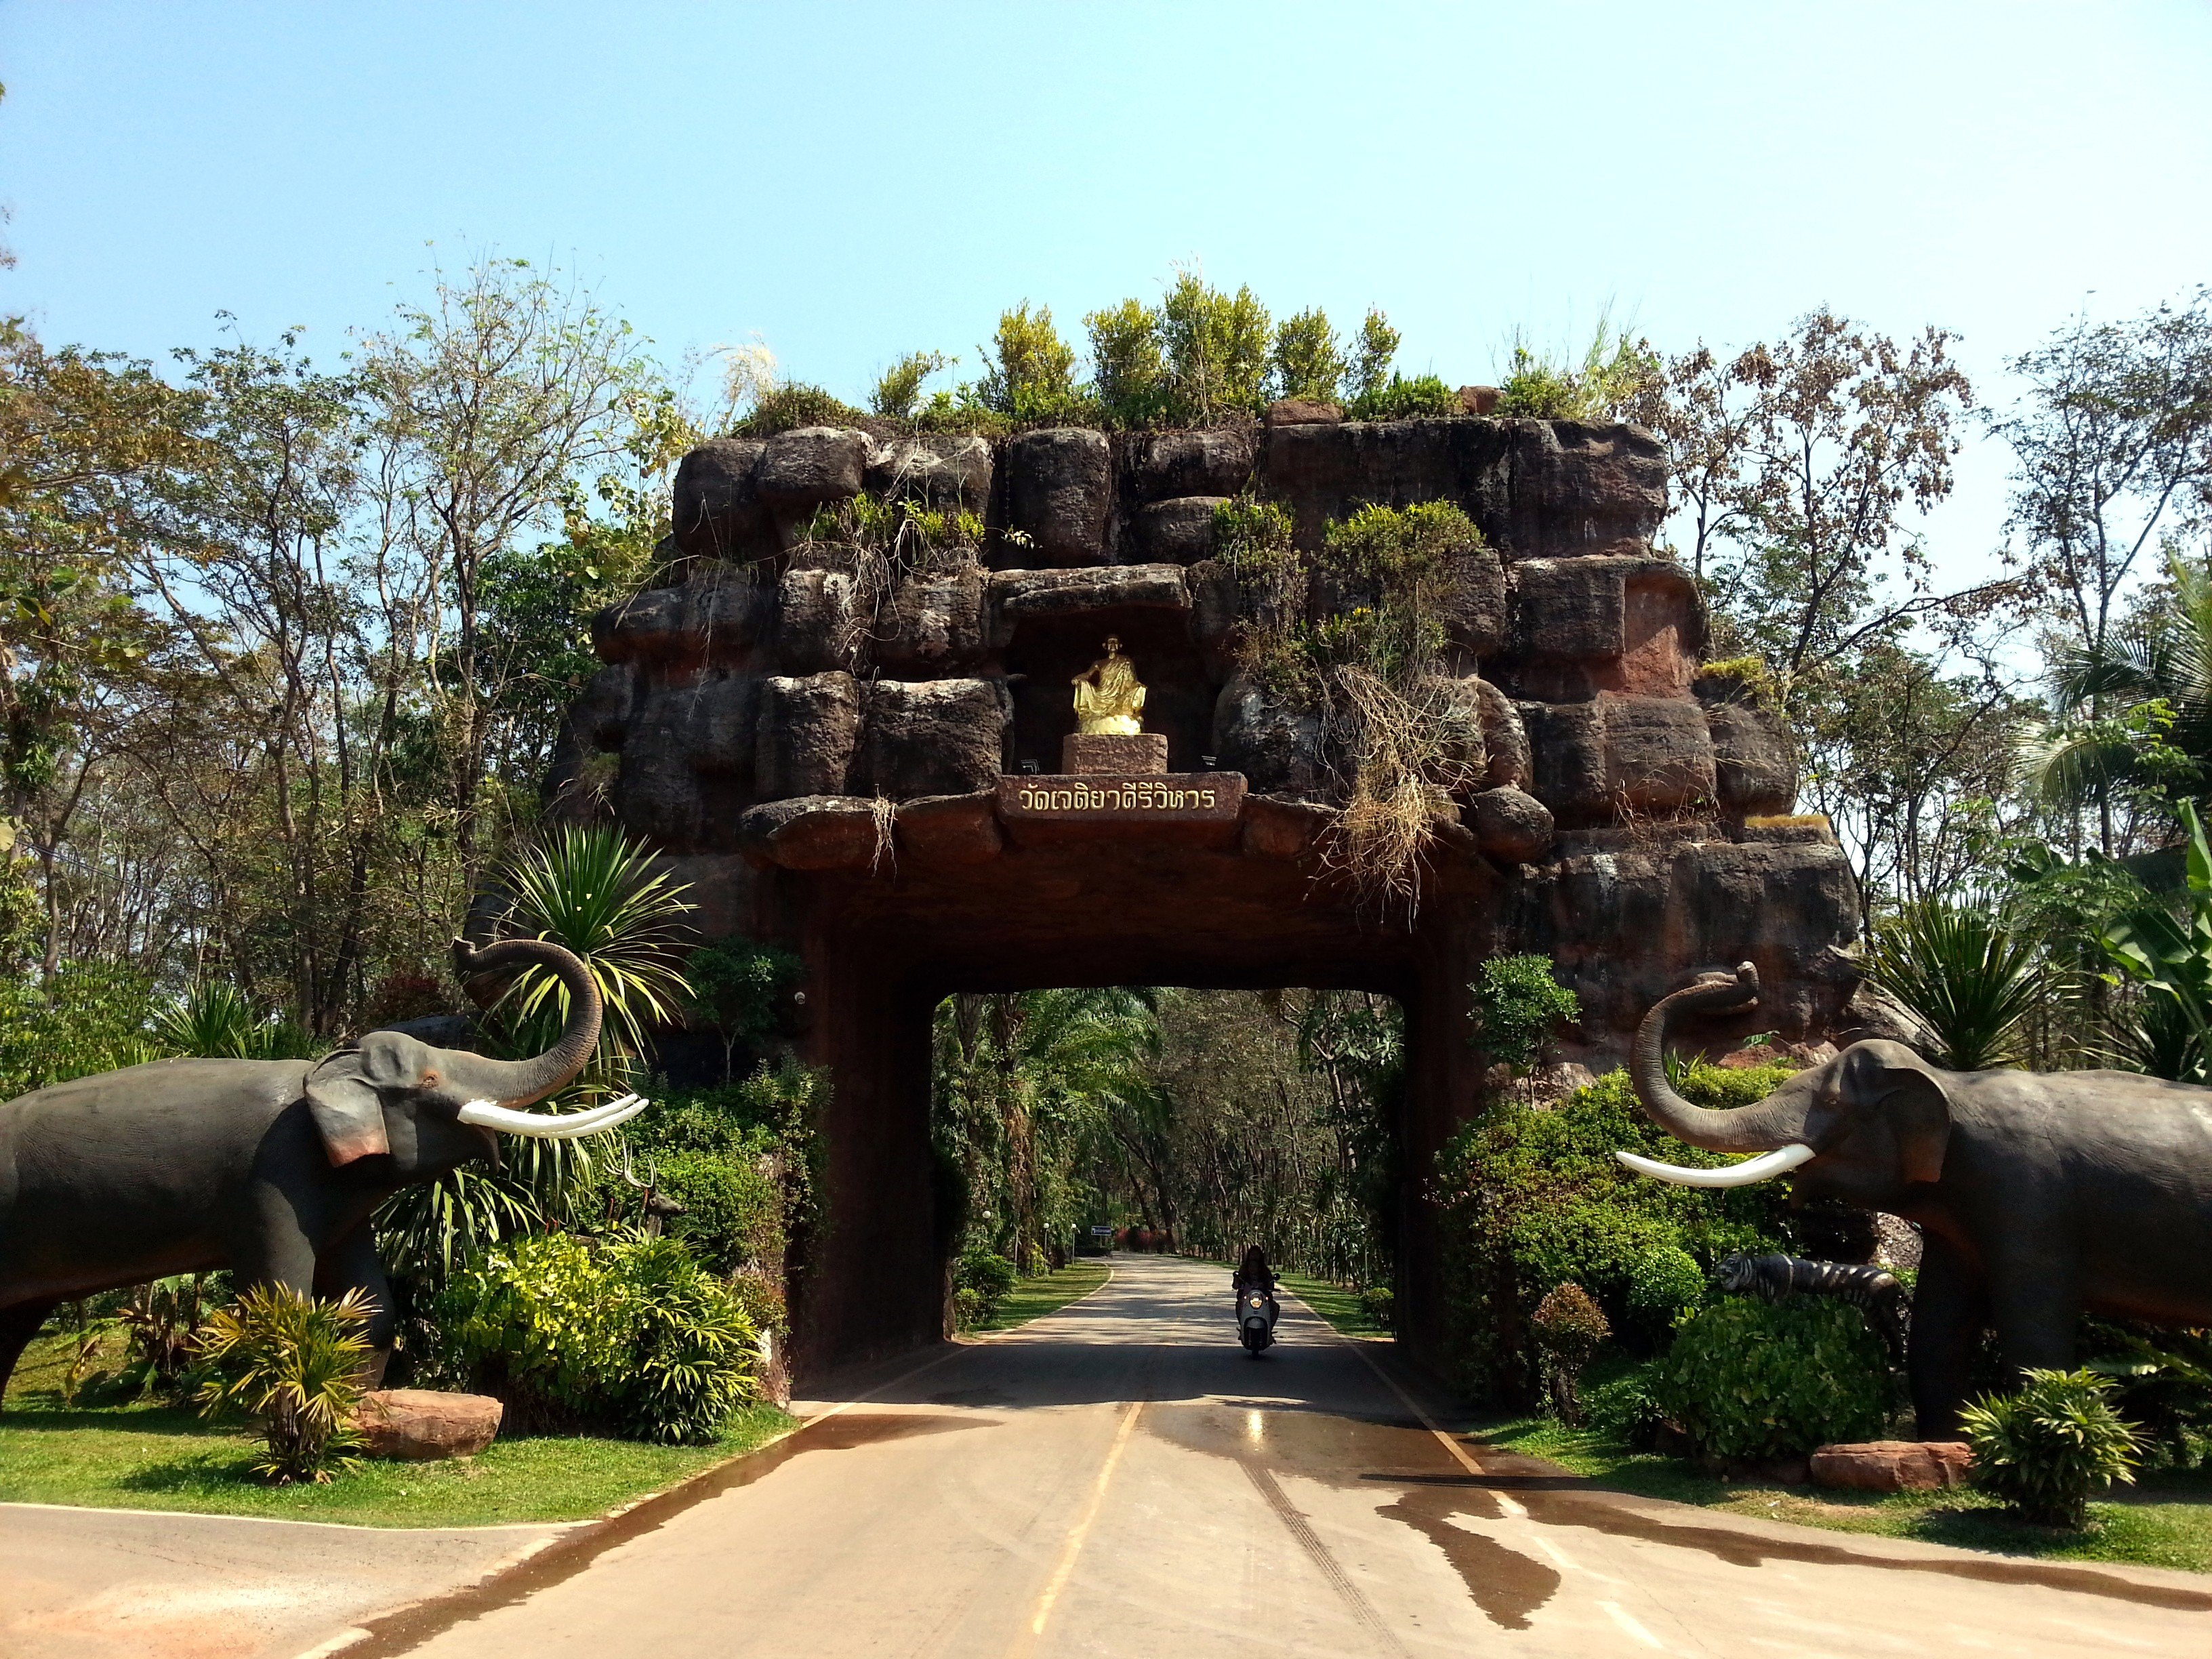 Entrance to Wat Phu Tok